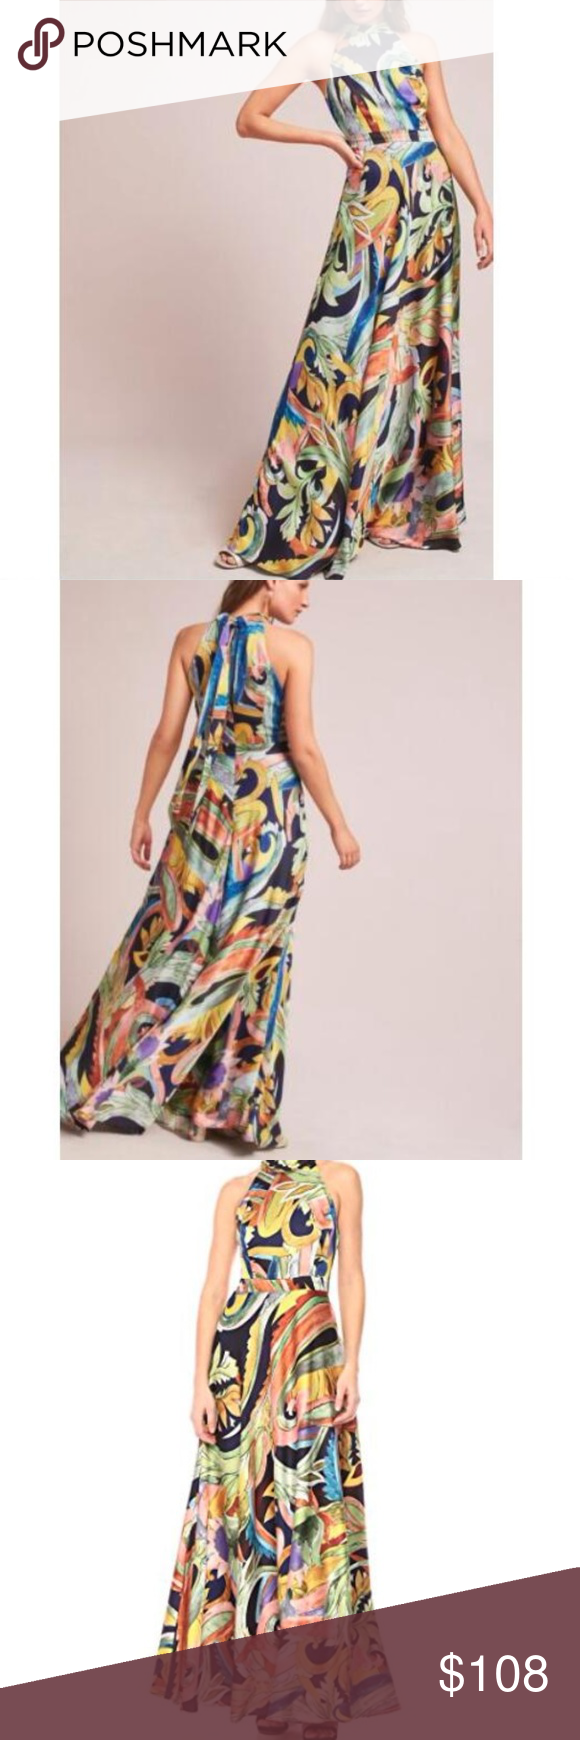 24ecc30aac93 Skyscraper Maxi Dress By Nicole Miller Waisted maxi silhouette High ...